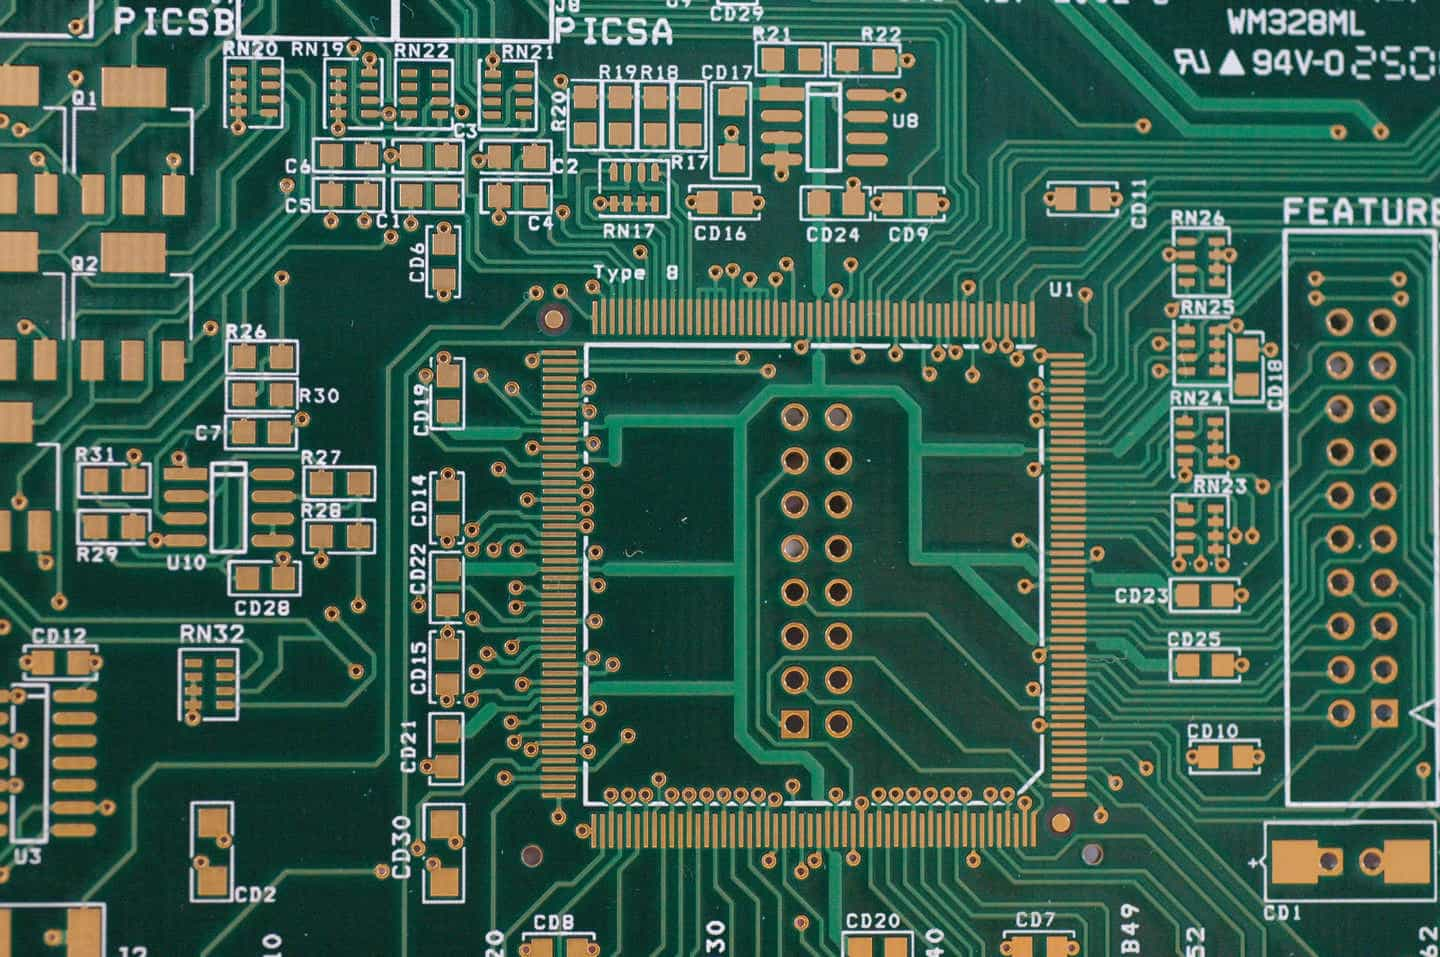 All Our In House Pcbs Are Manufactured At Factory Located Photos Pcb Circuits Computers Components Technology Image Faraday Printed Ltd Proudly Holds The Quality Standards And Trade Accreditations Expected Of A Global Manufacturer Leading